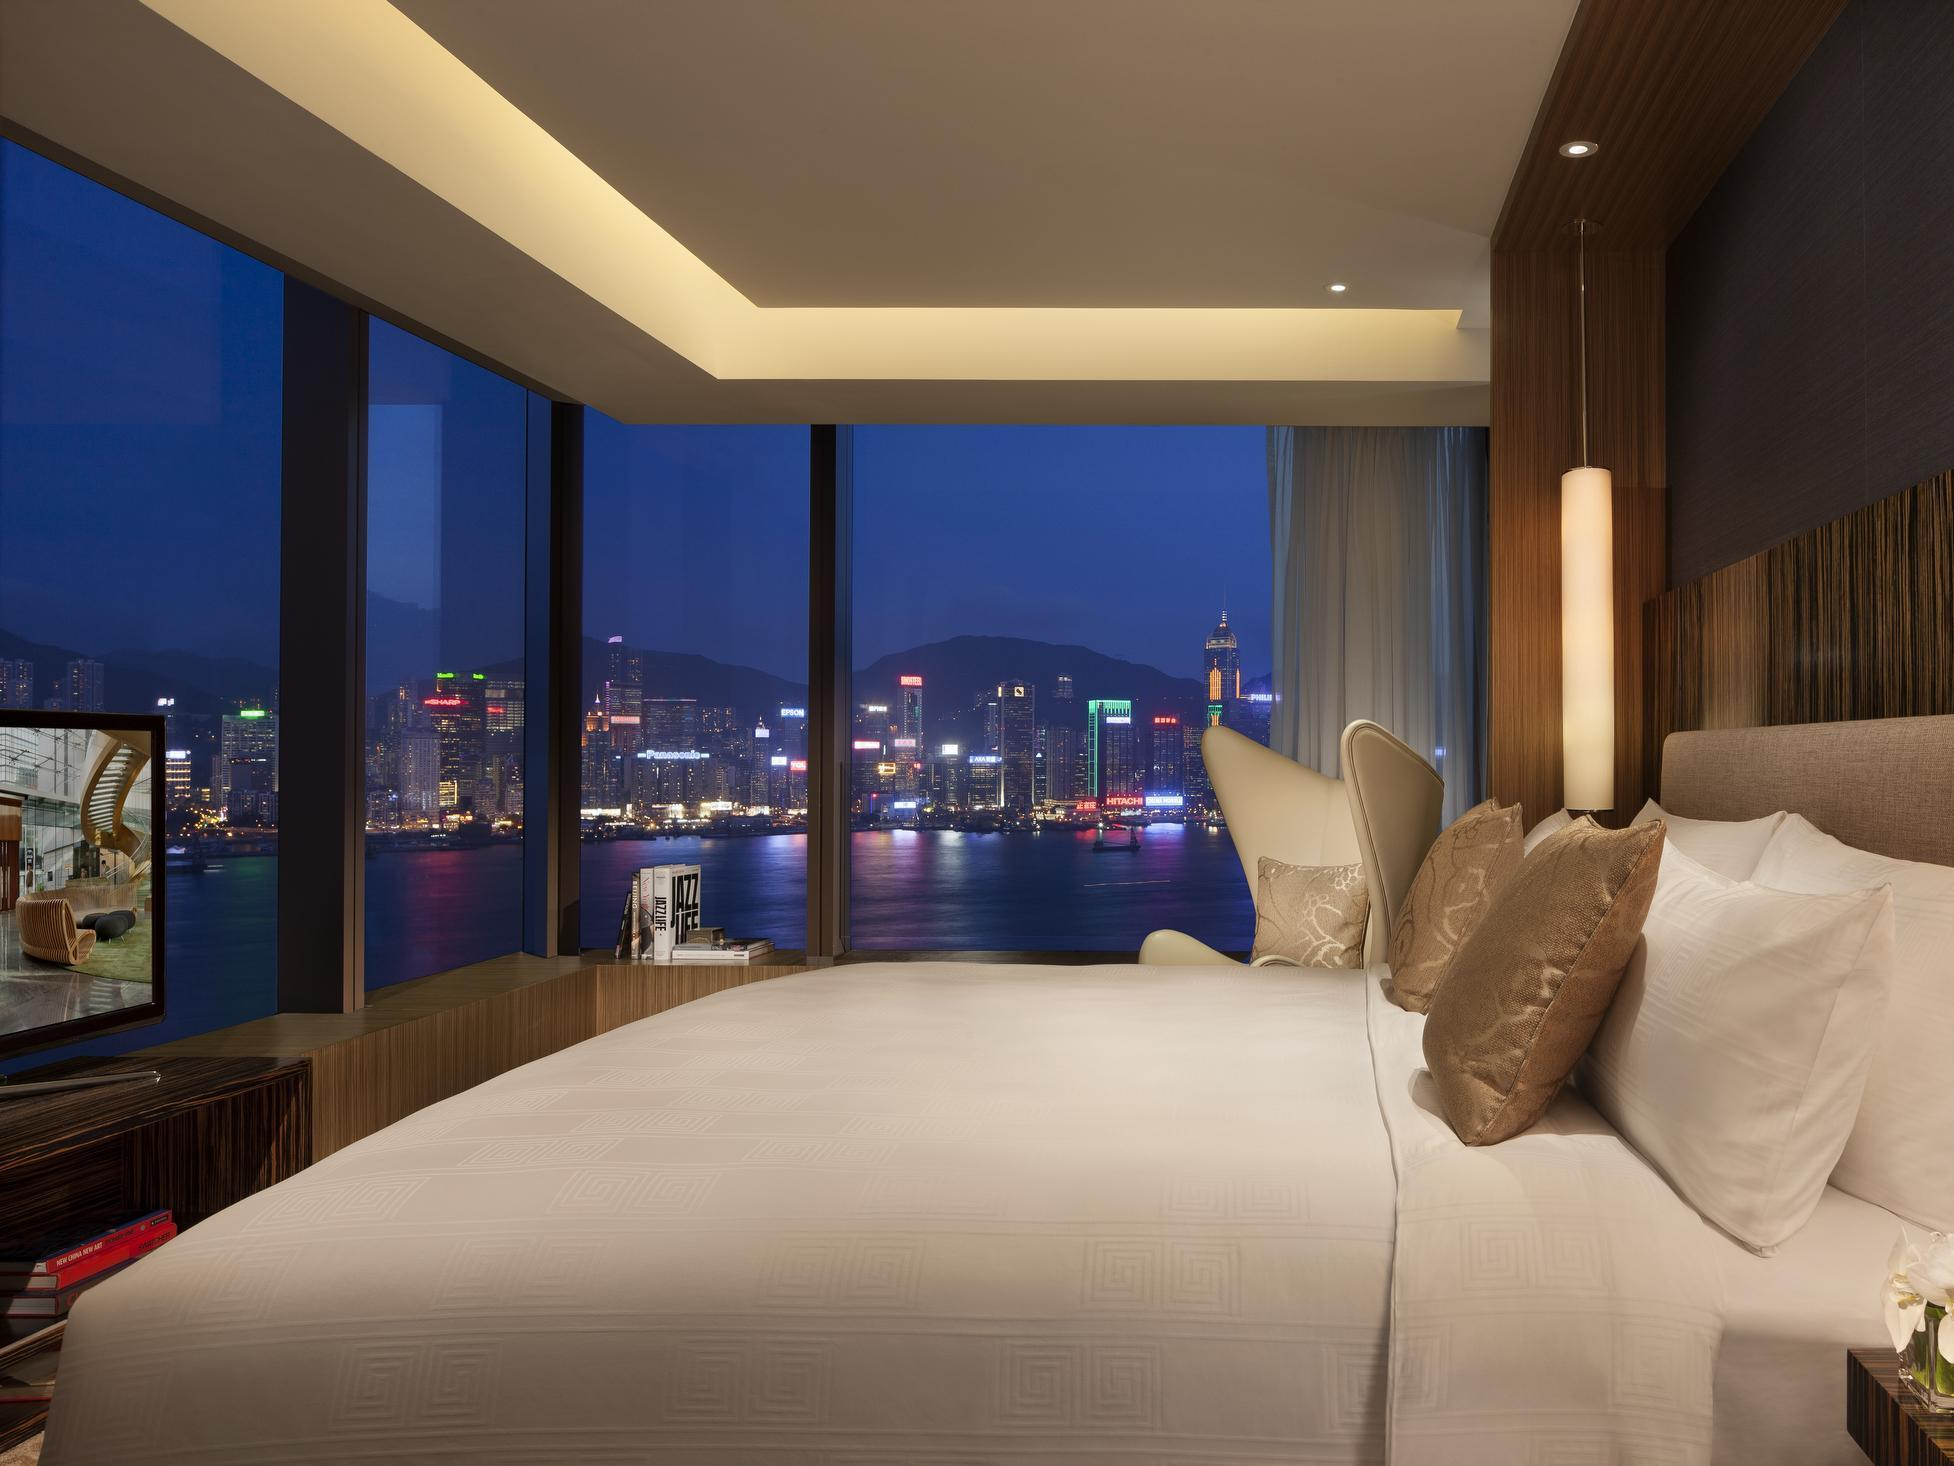 Suite ICON Club 80 con cama extragrande y vistas al puerto (ICON Club 80 Harbour Suite with King Bed)